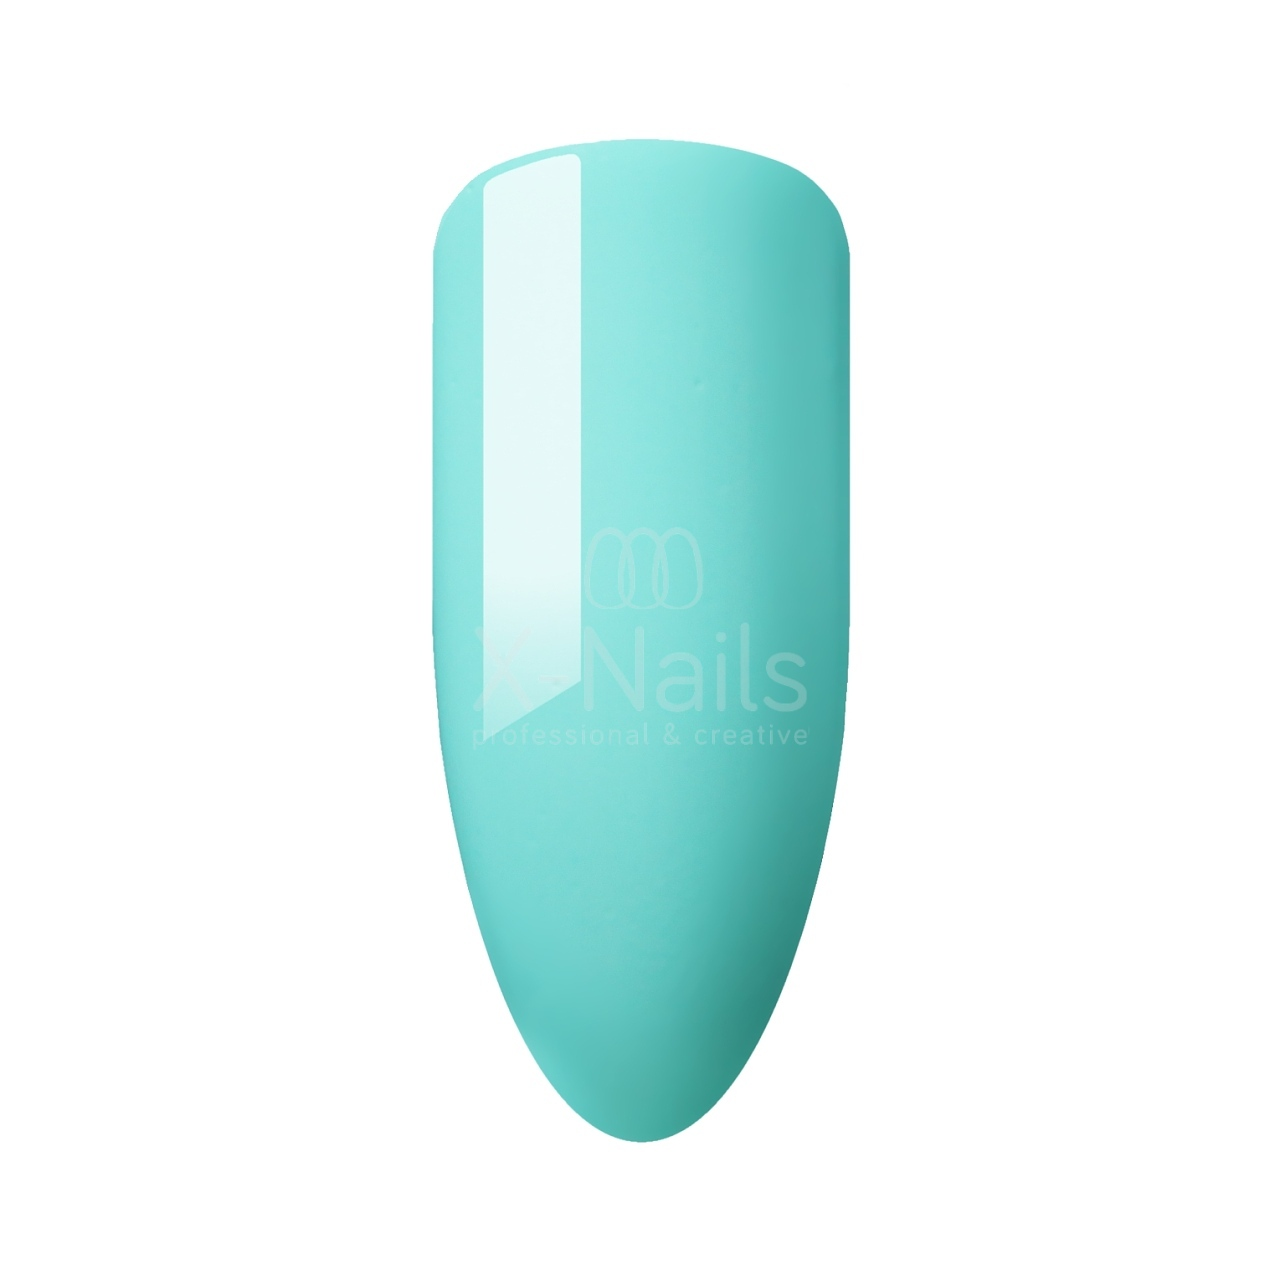 X-NAILS gel lak Amazing Line, 5 ml - TIFFANY BLUE